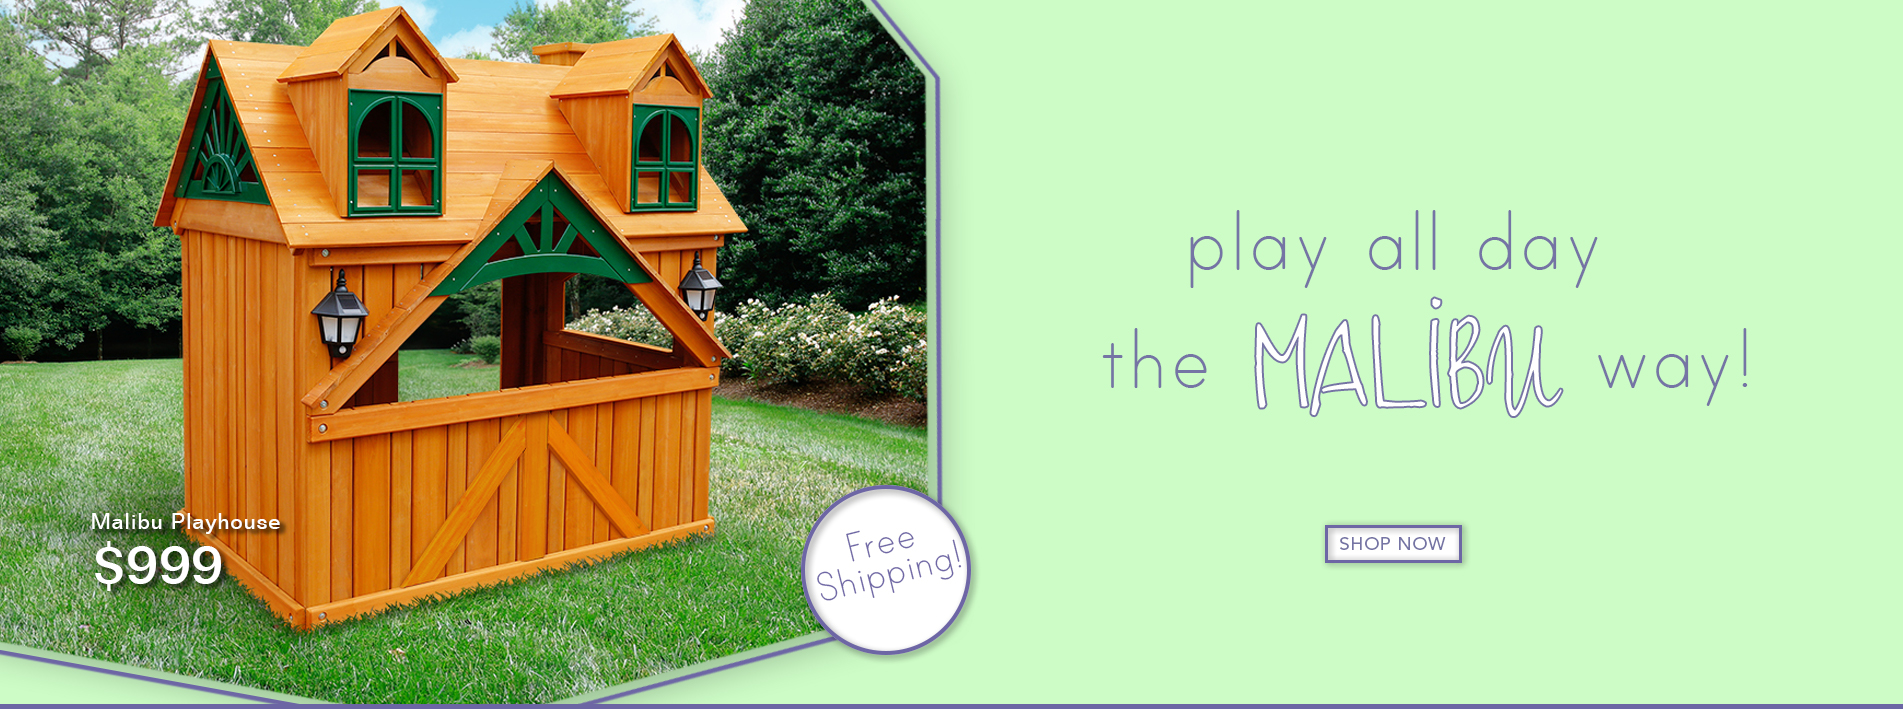 Make backyard memories for your kids with hours of fun in the Malibu Playhouse. Now with free shipping!